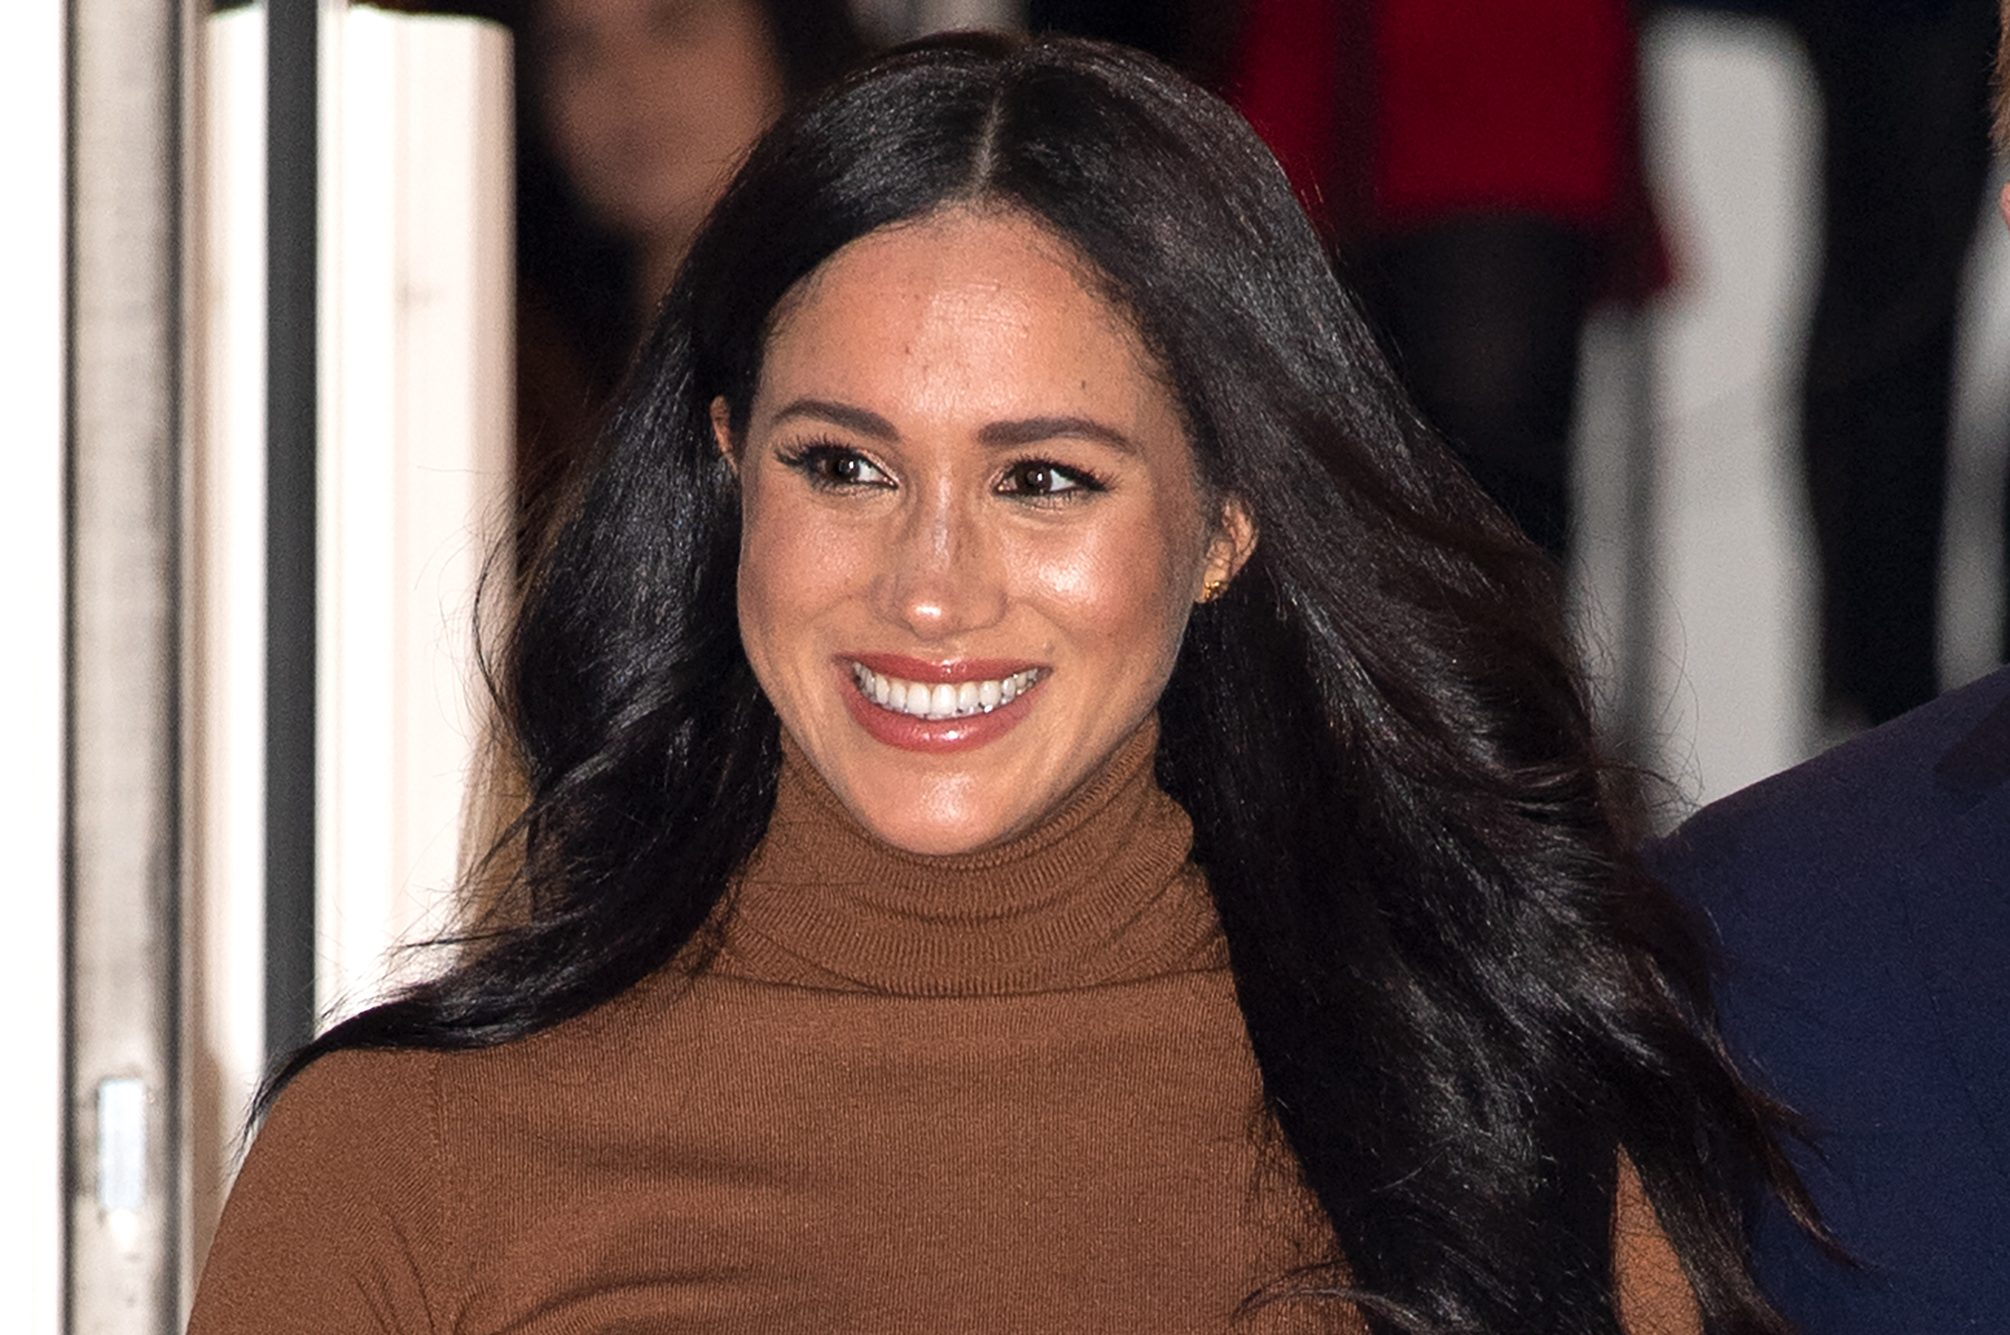 Meghan Markle reportedly set to film first TV interview since royal split with Ellen DeGeneres